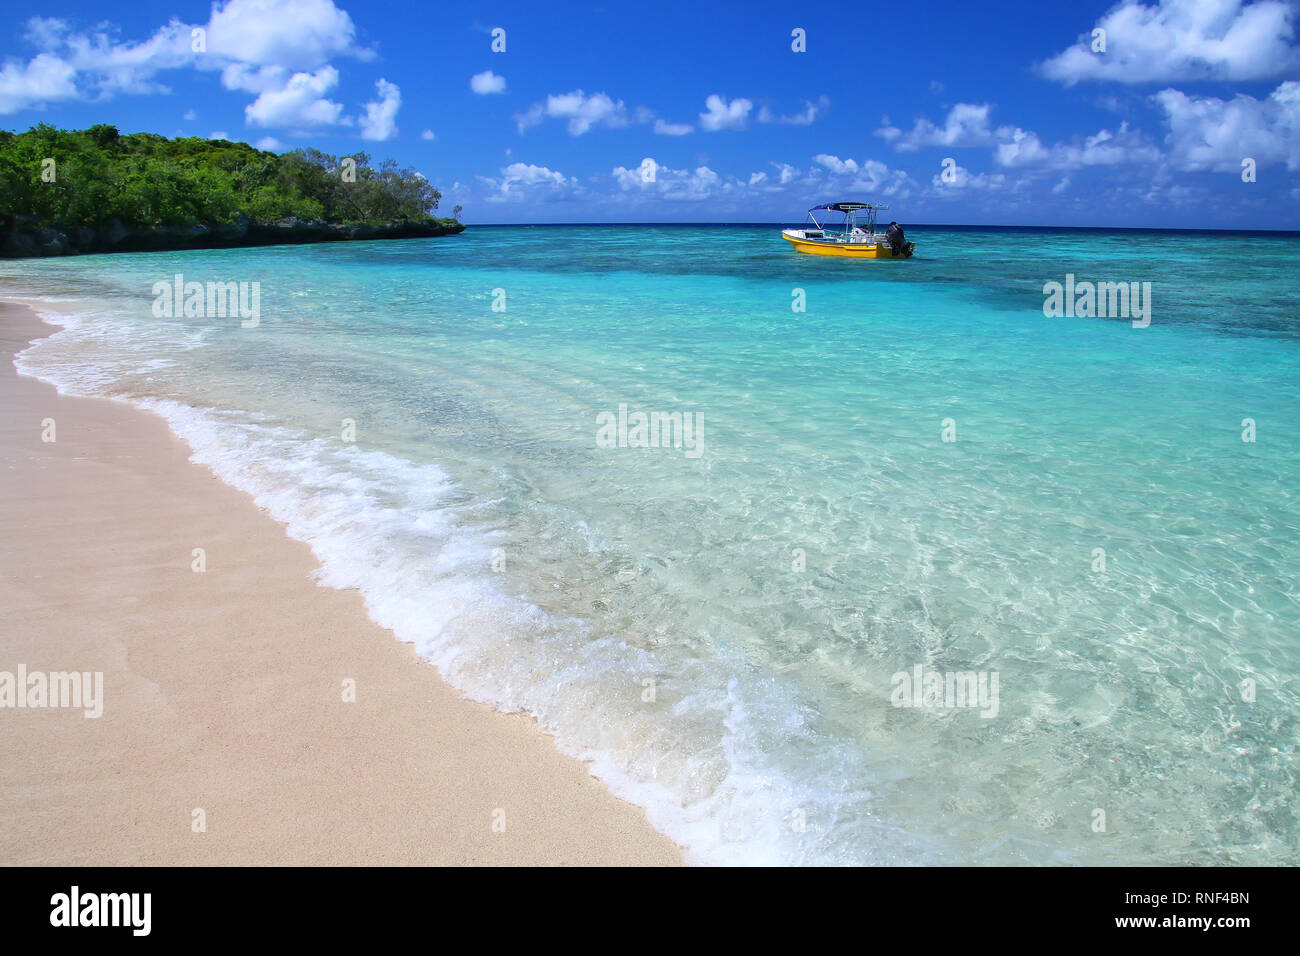 Sandy beach at Gee island in Ouvea lagoon, Loyalty Islands, New Caledonia. The lagoon was listed as Unesco World Heritage site in 2008. - Stock Image